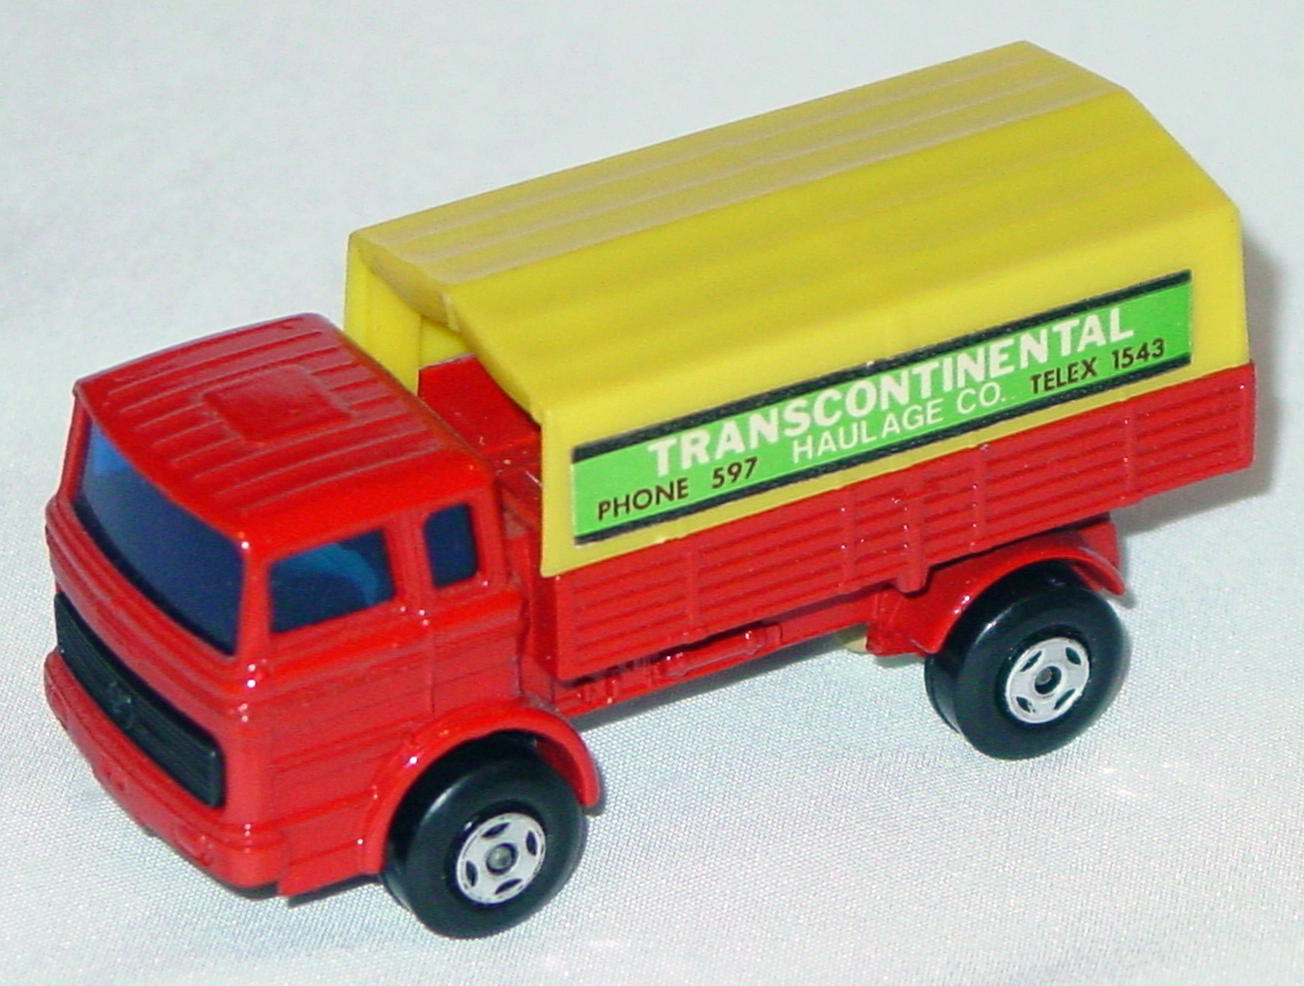 Lesney SuperFast 01 A 5 - Merc Truck Red and yellow Transcon no 1978 on base